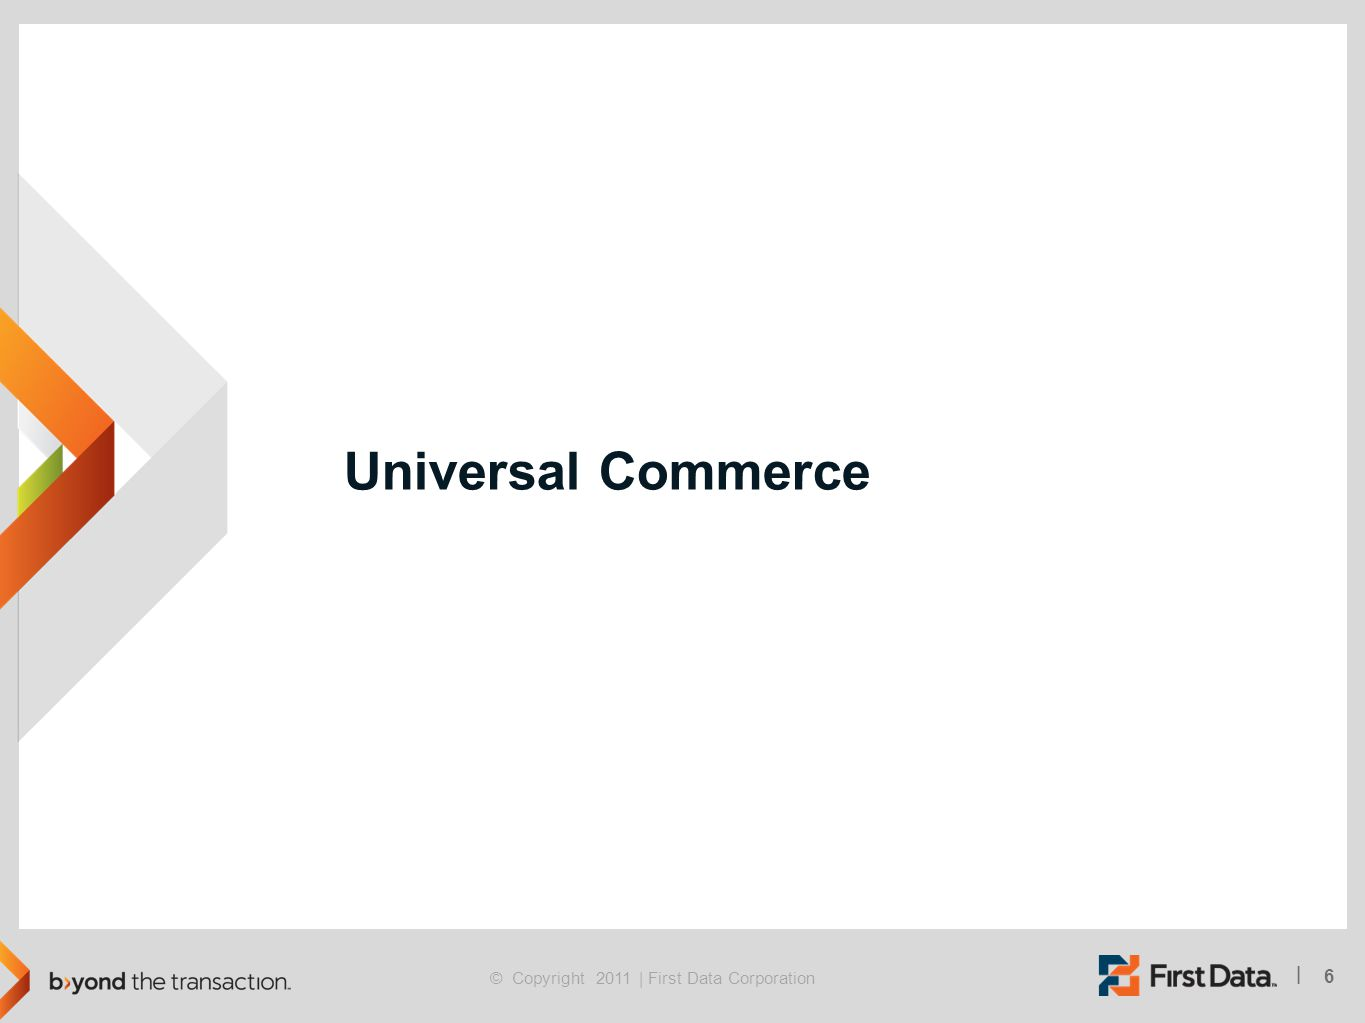 Universal Commerce